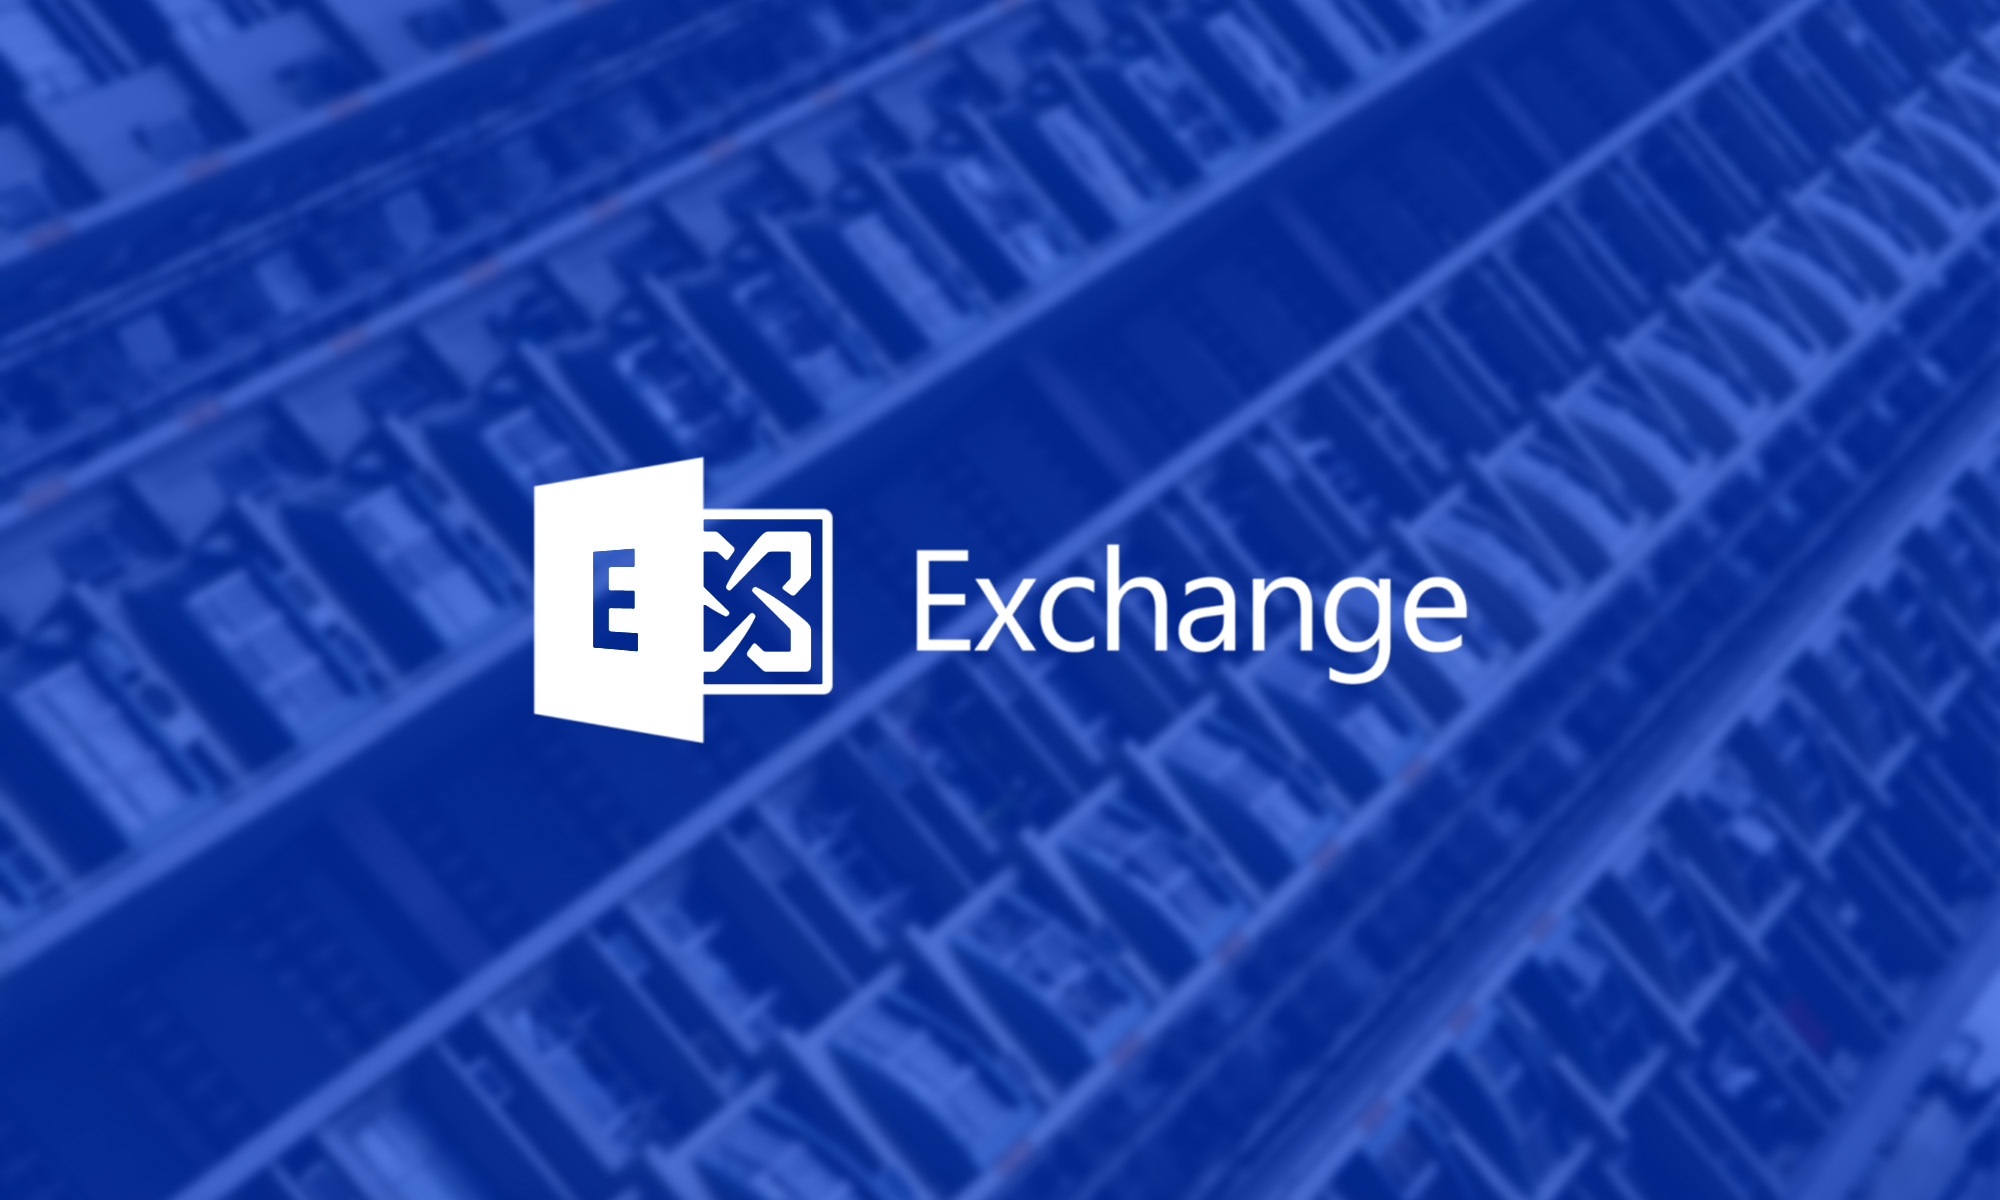 exploit in microsoft exchange used to breach over 30000 organizations